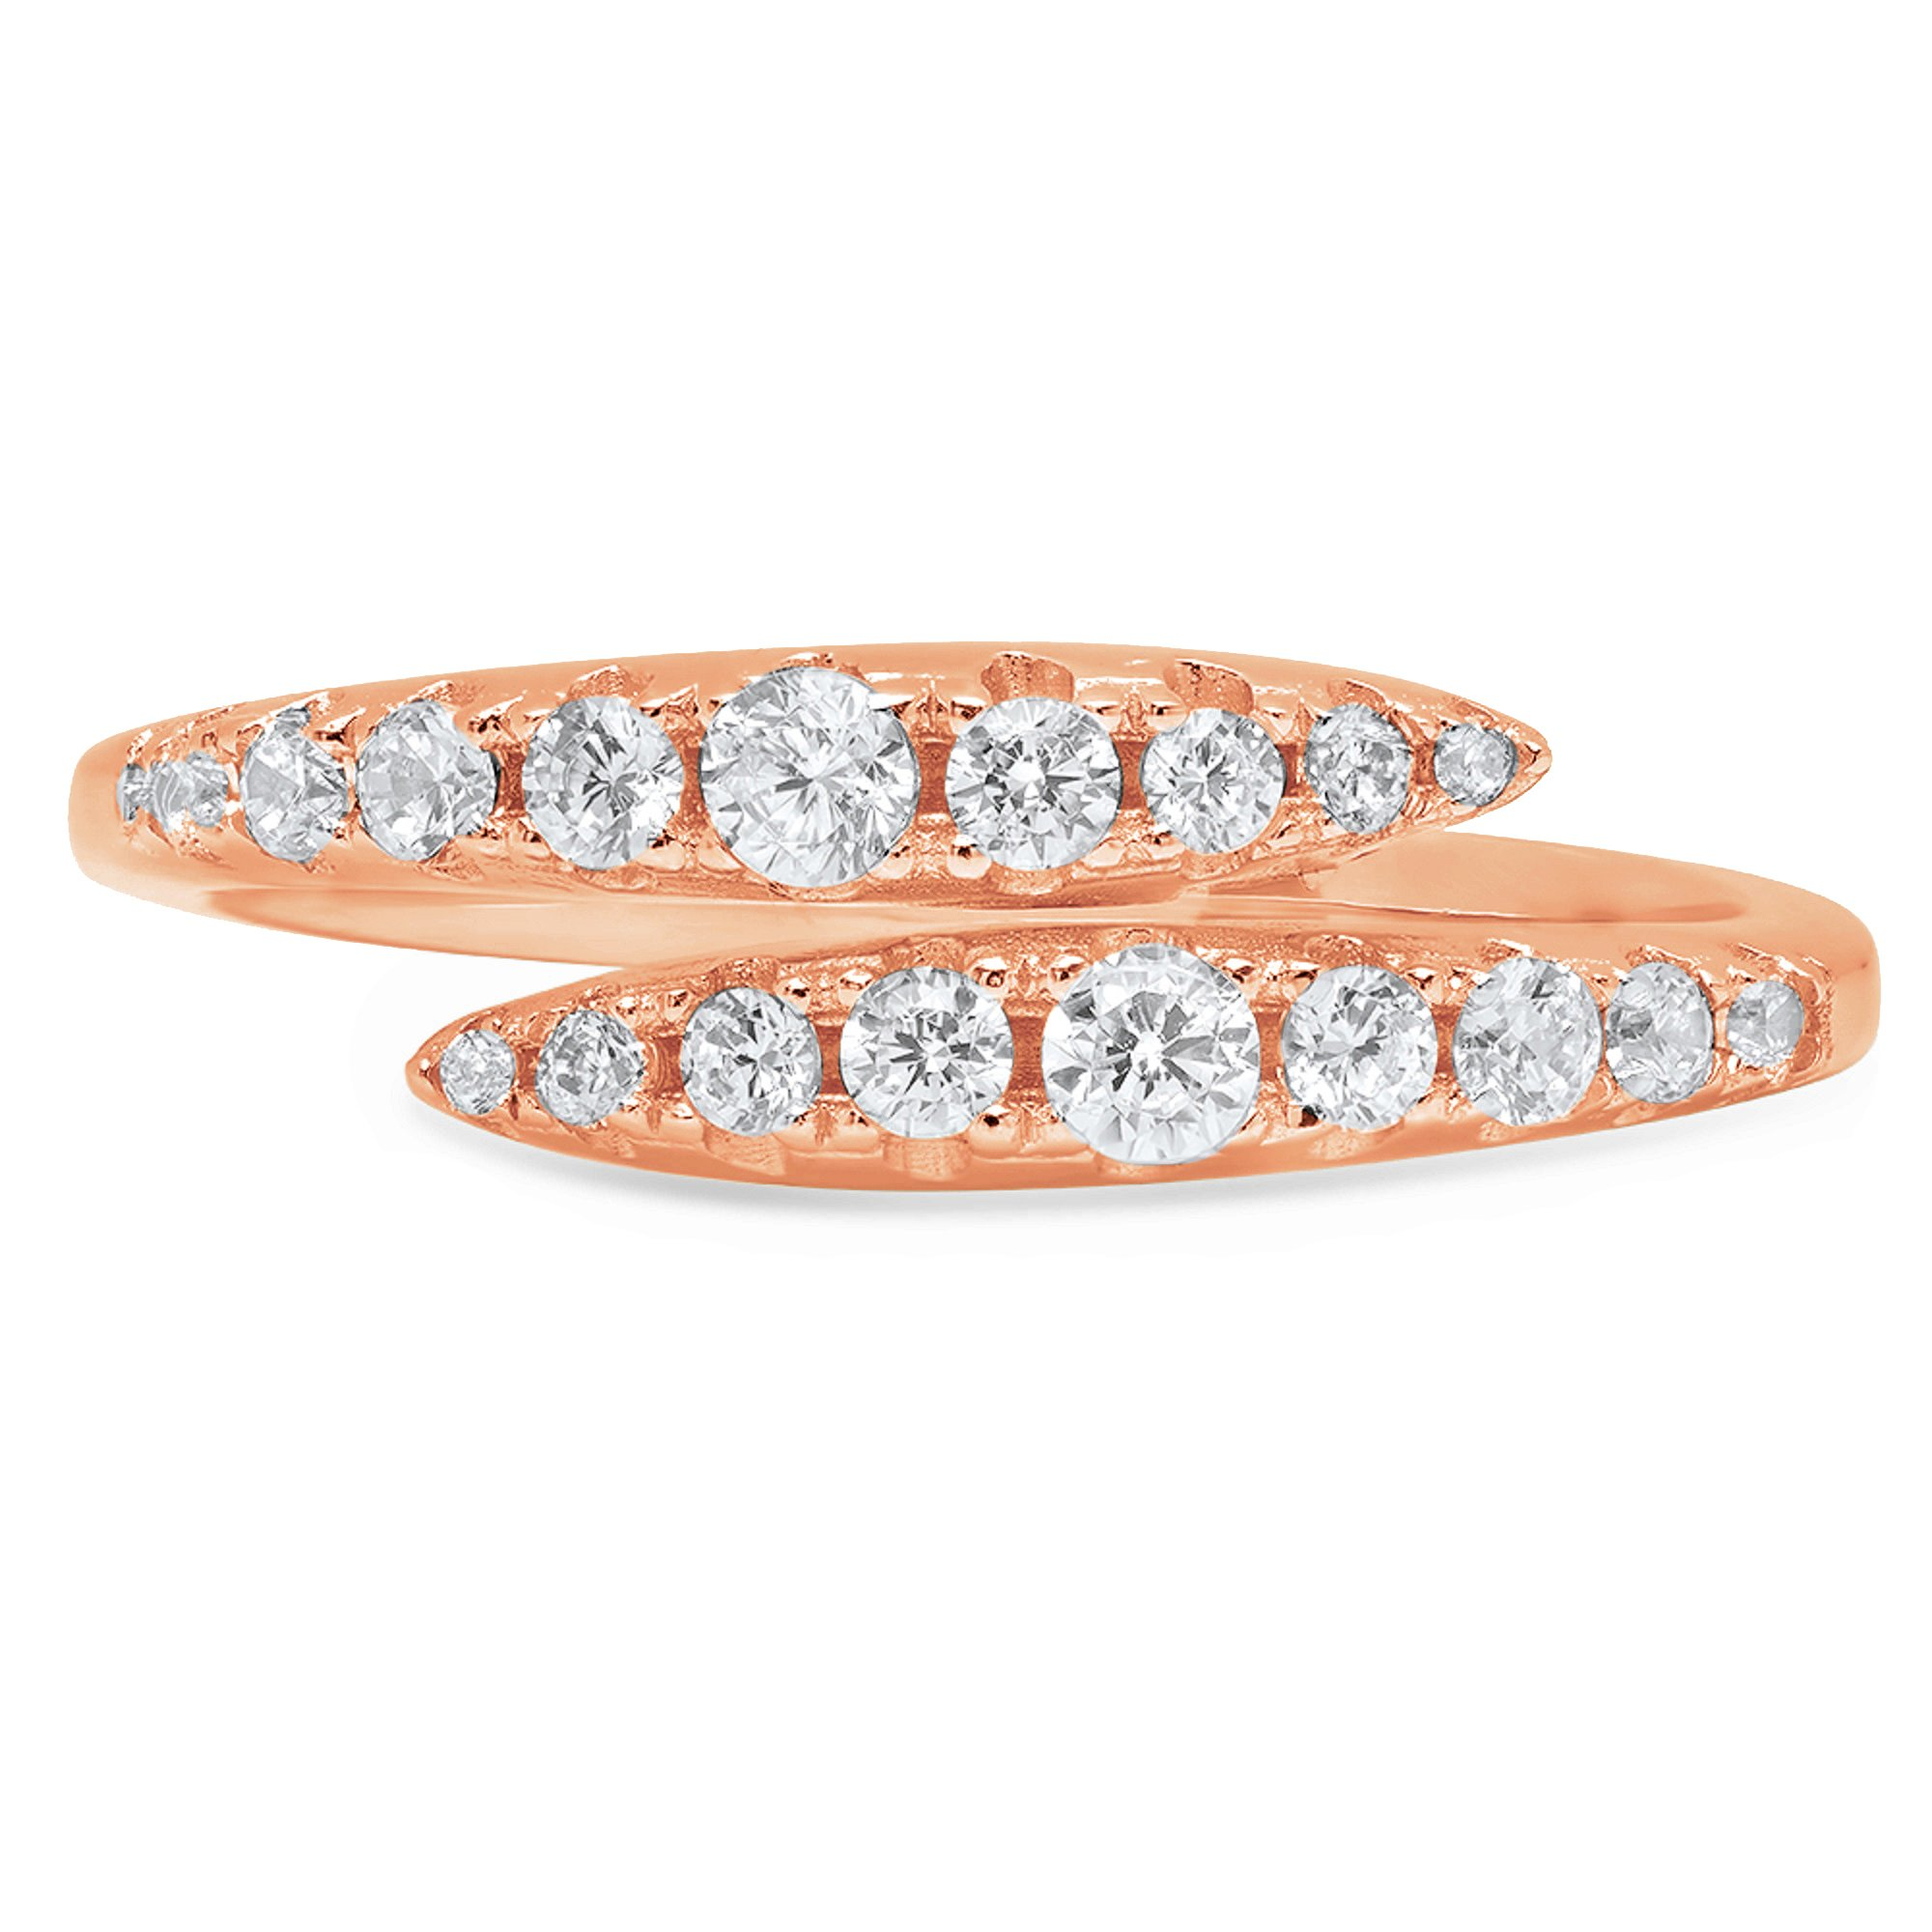 0.60ct Round Brilliant Cut Classic Designer Petite Skinny Infinity Solitaire Statement Bridal Curved Promise Engagement Wedding Anniversary Ring Band Solid 14k Rose Gold, 6.5